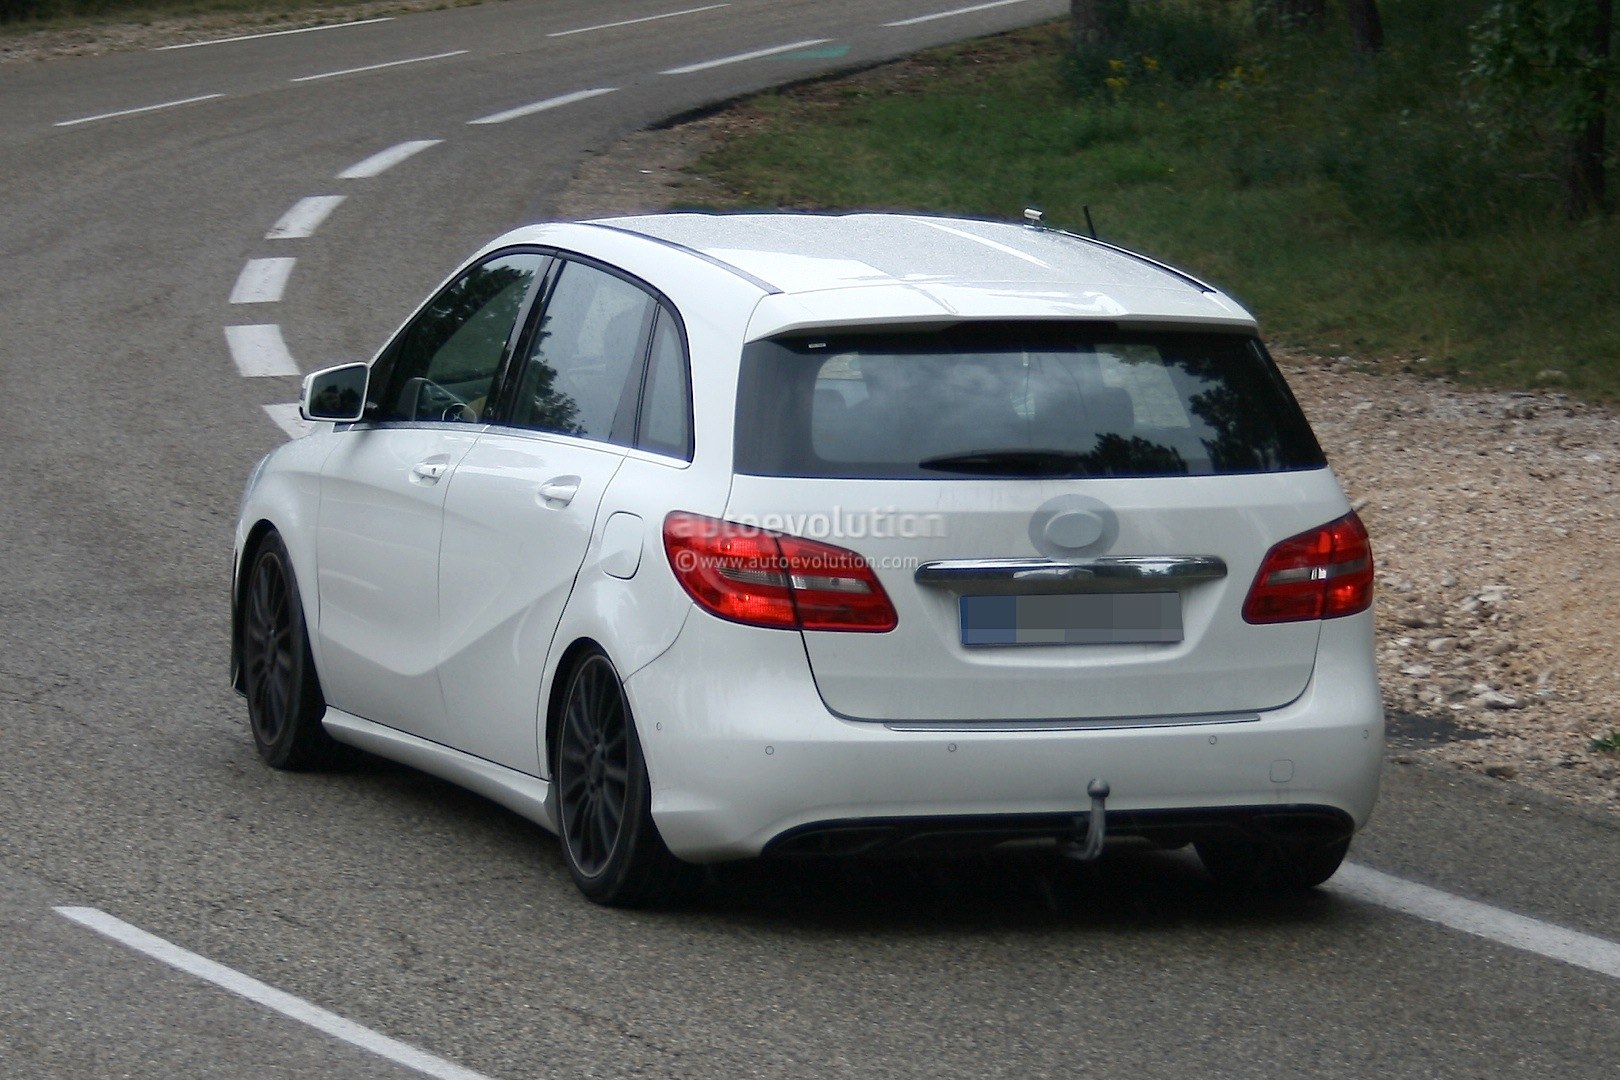 Amg version of the b class caught testing autoevolution for Mercedes benz emergency number